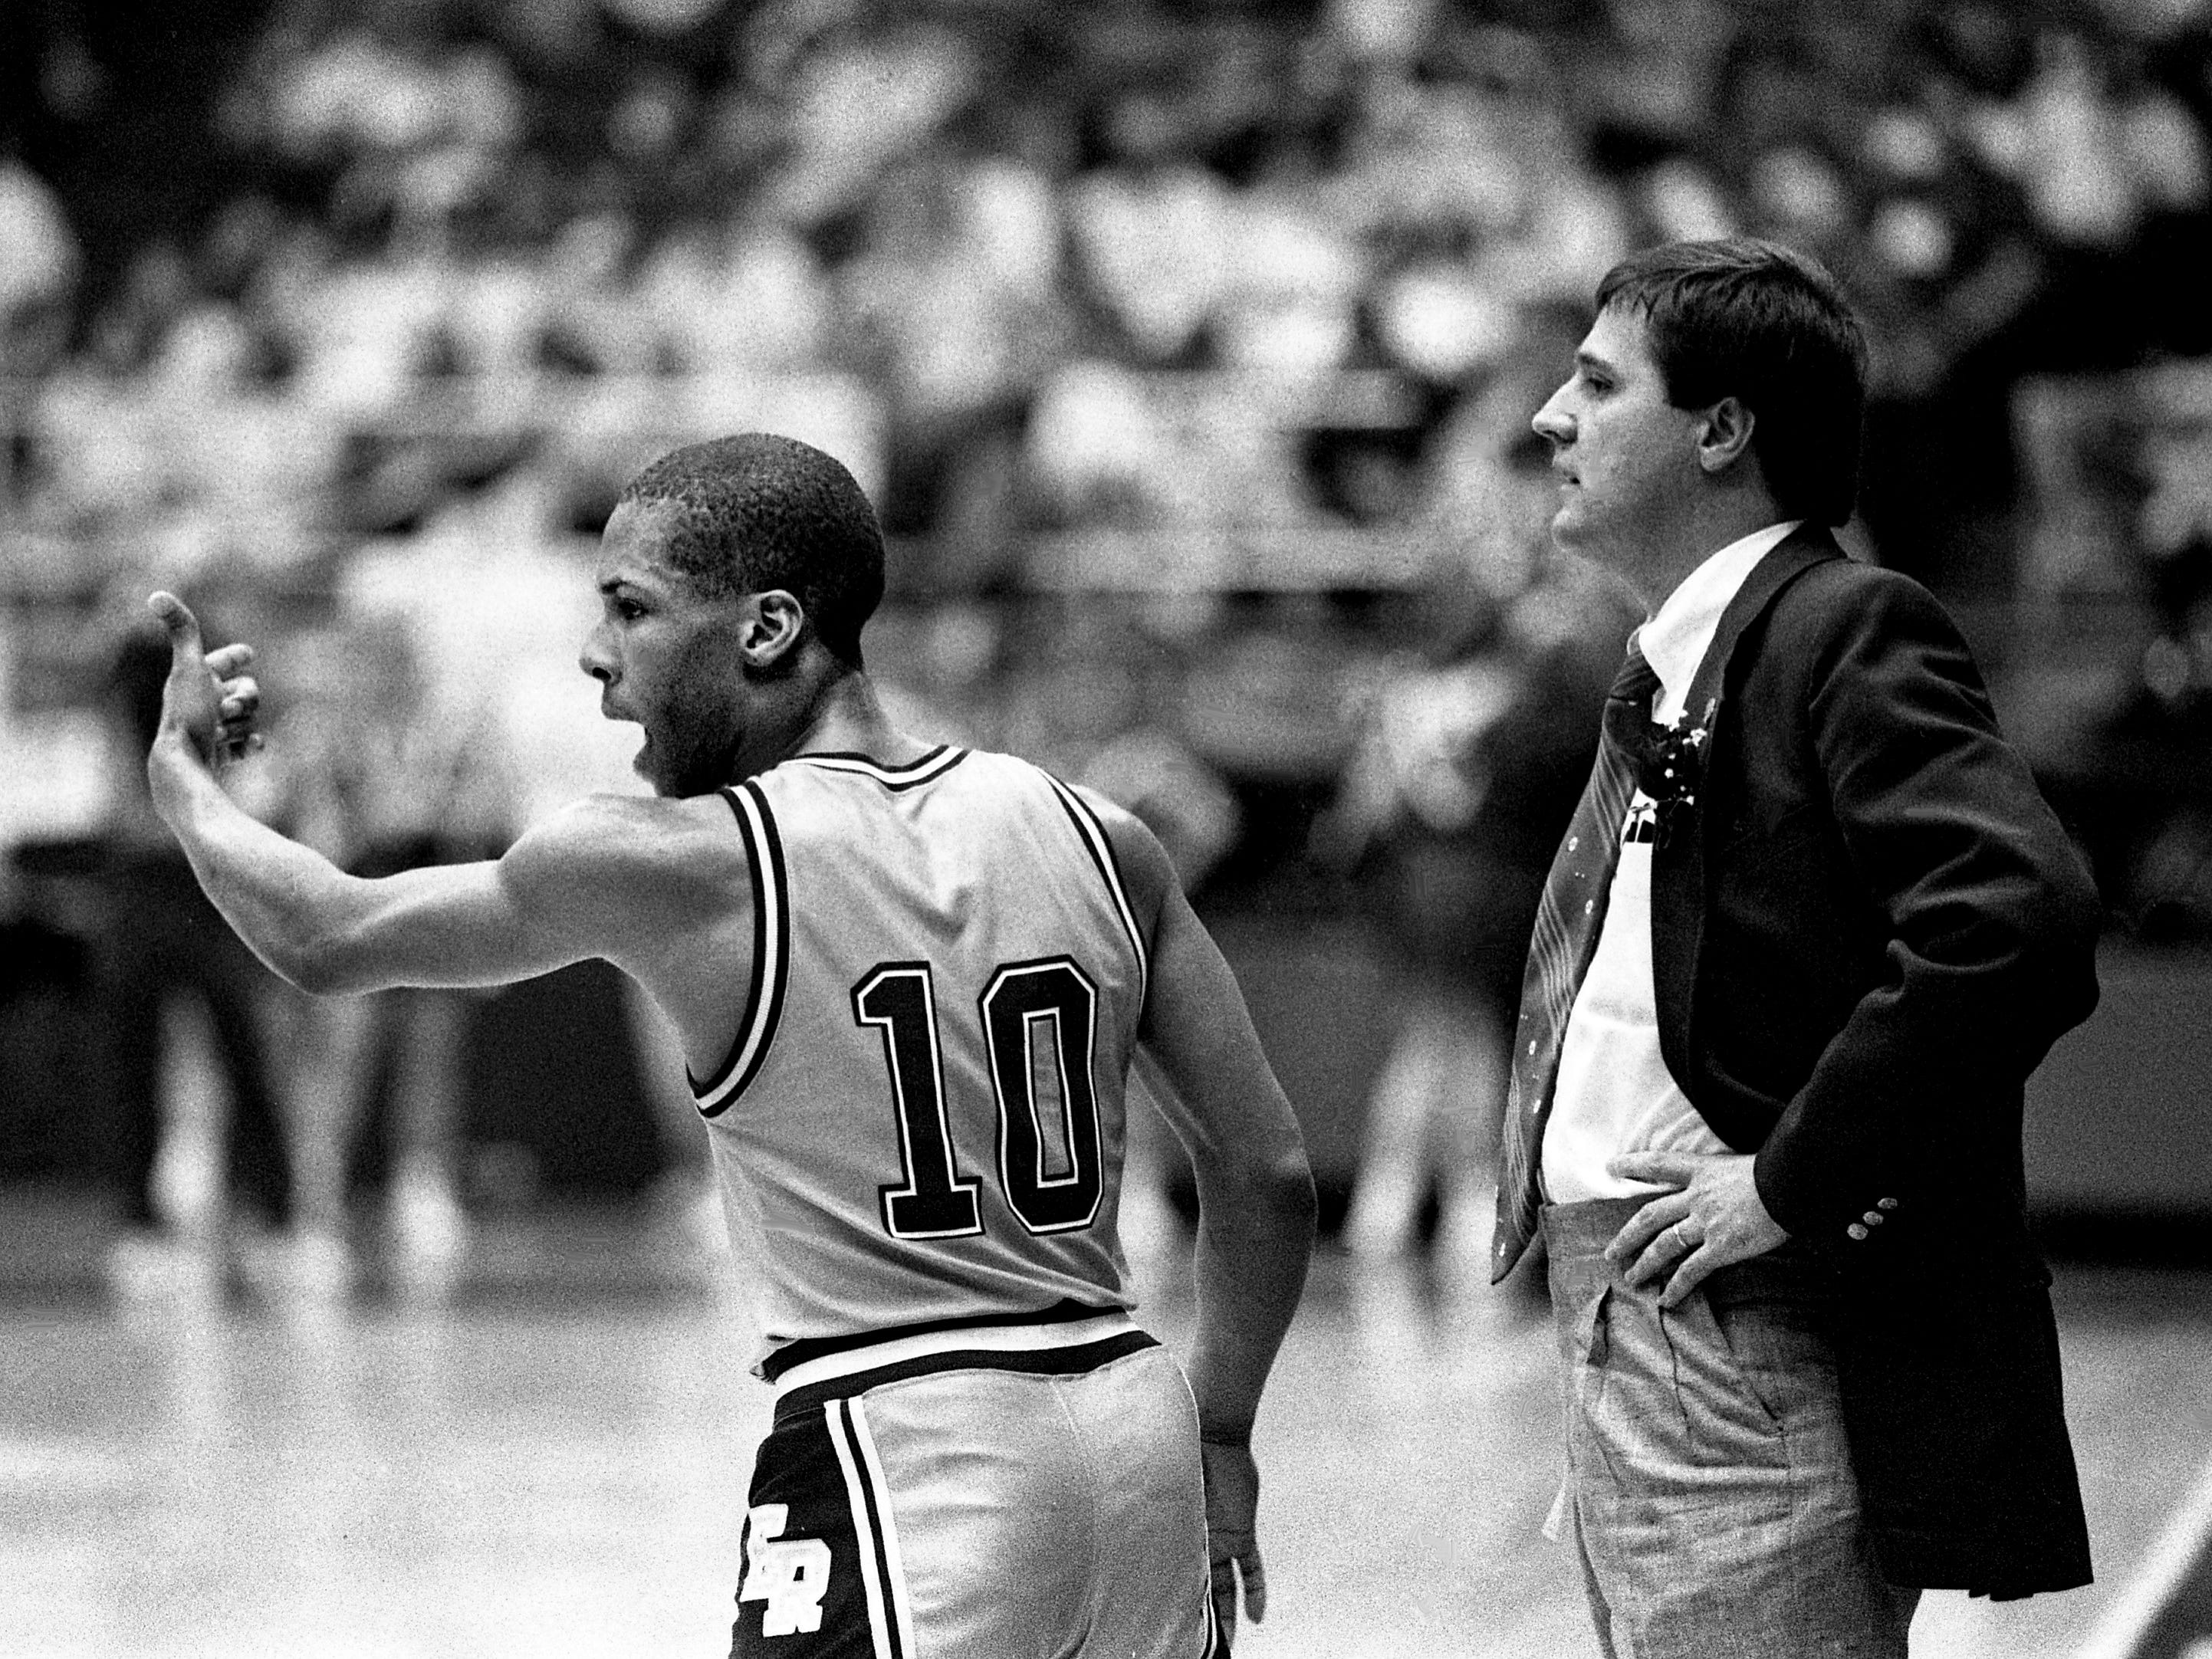 East Robertson High guard Tyrone Dotson (10) yells at his teammates as head coach David Collie looks on in their bid to win three consecutive TSSAA Class A titles. They are playing Oliver Springs High in the championship game at MTSU's Murphy Center in Murfreesboro March 18, 1989.